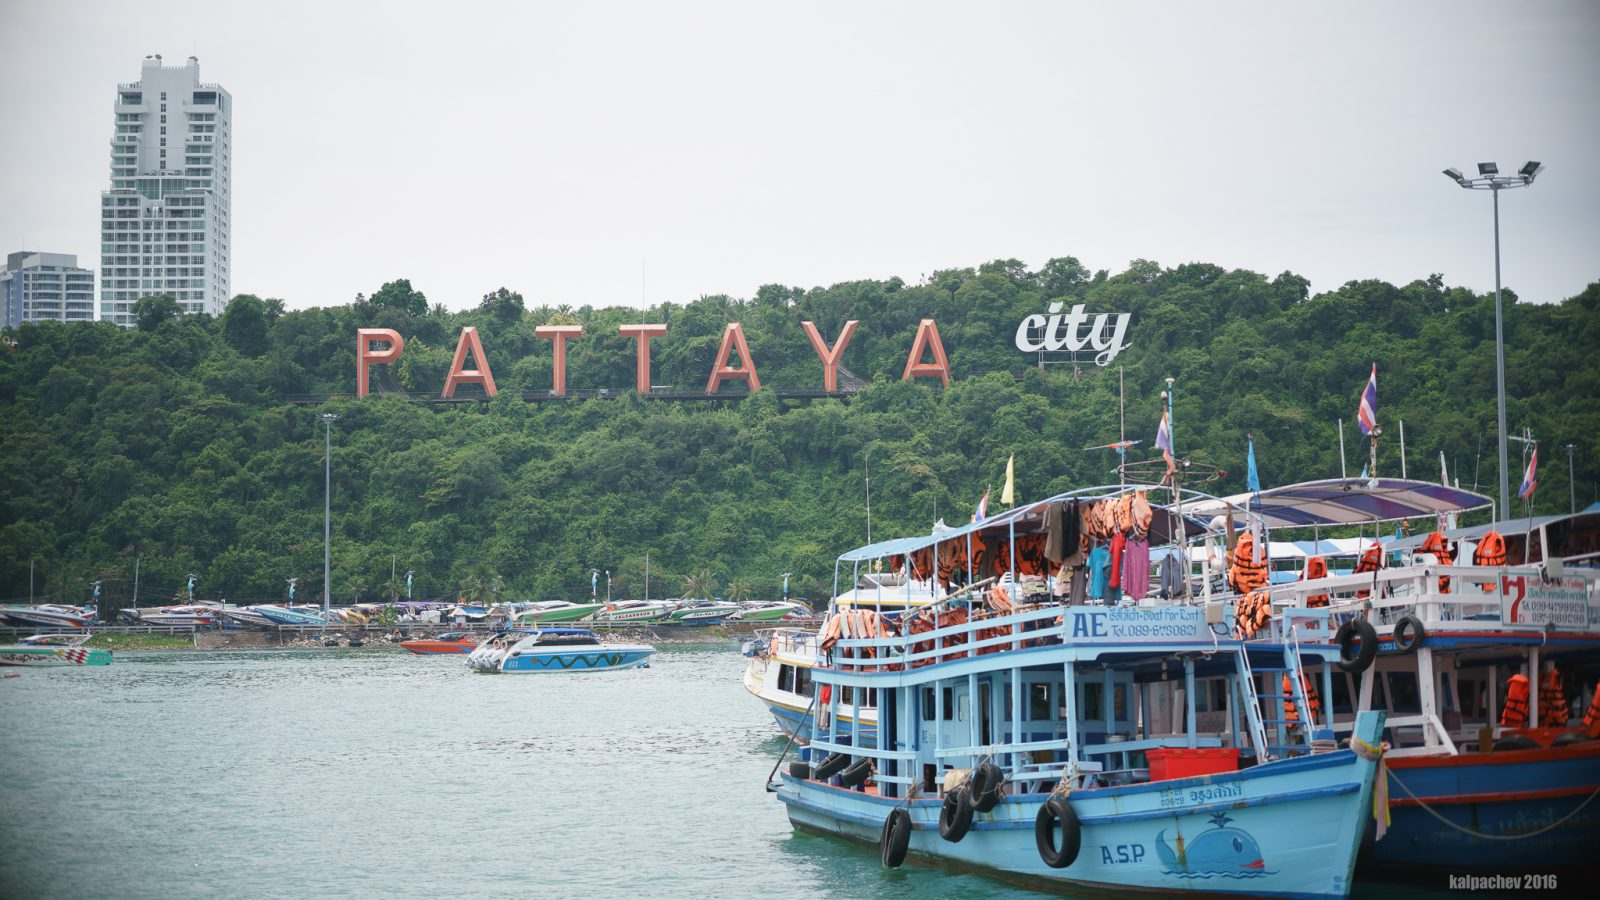 Pattaya, Thailand - October 2016